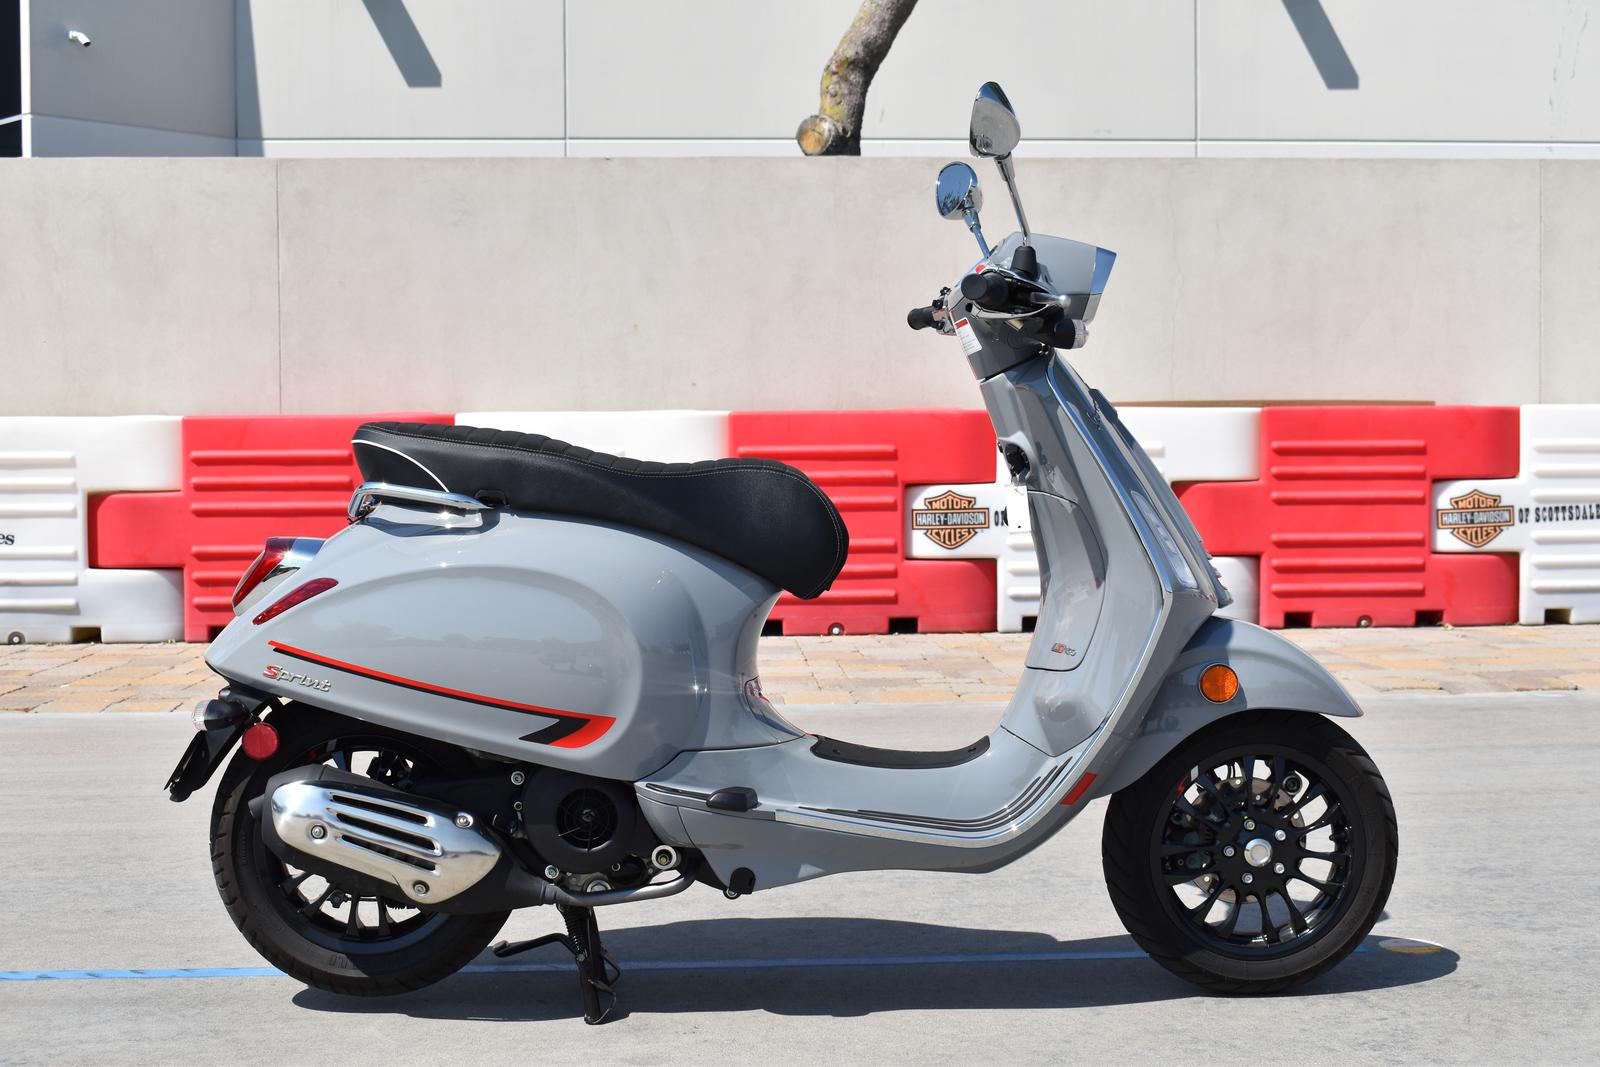 2020 Vespa Primavera 150 Sport For Sale In Scottsdale Az Go Az Motorcycles In Scottsdale Scottsdale Az 480 609 1800